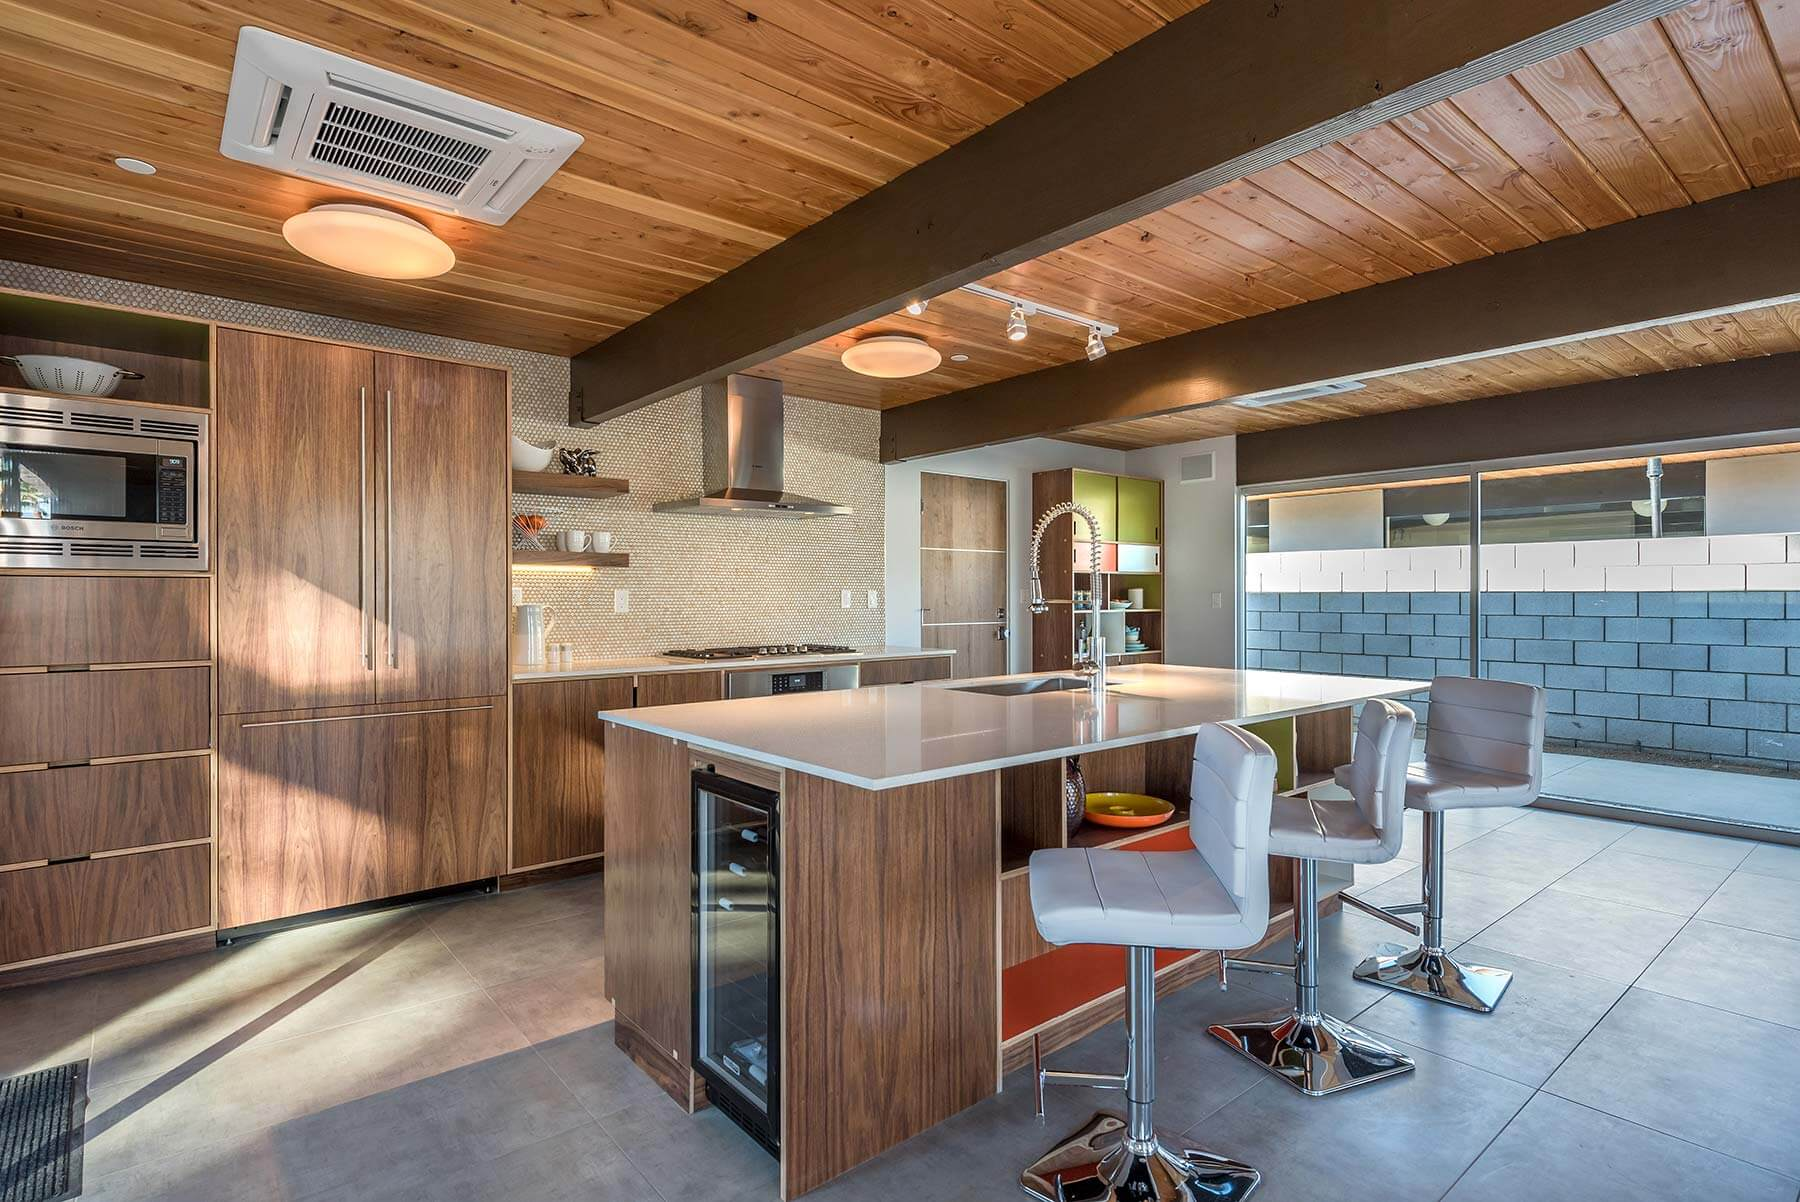 The Desert Eichler 2 Kitchen